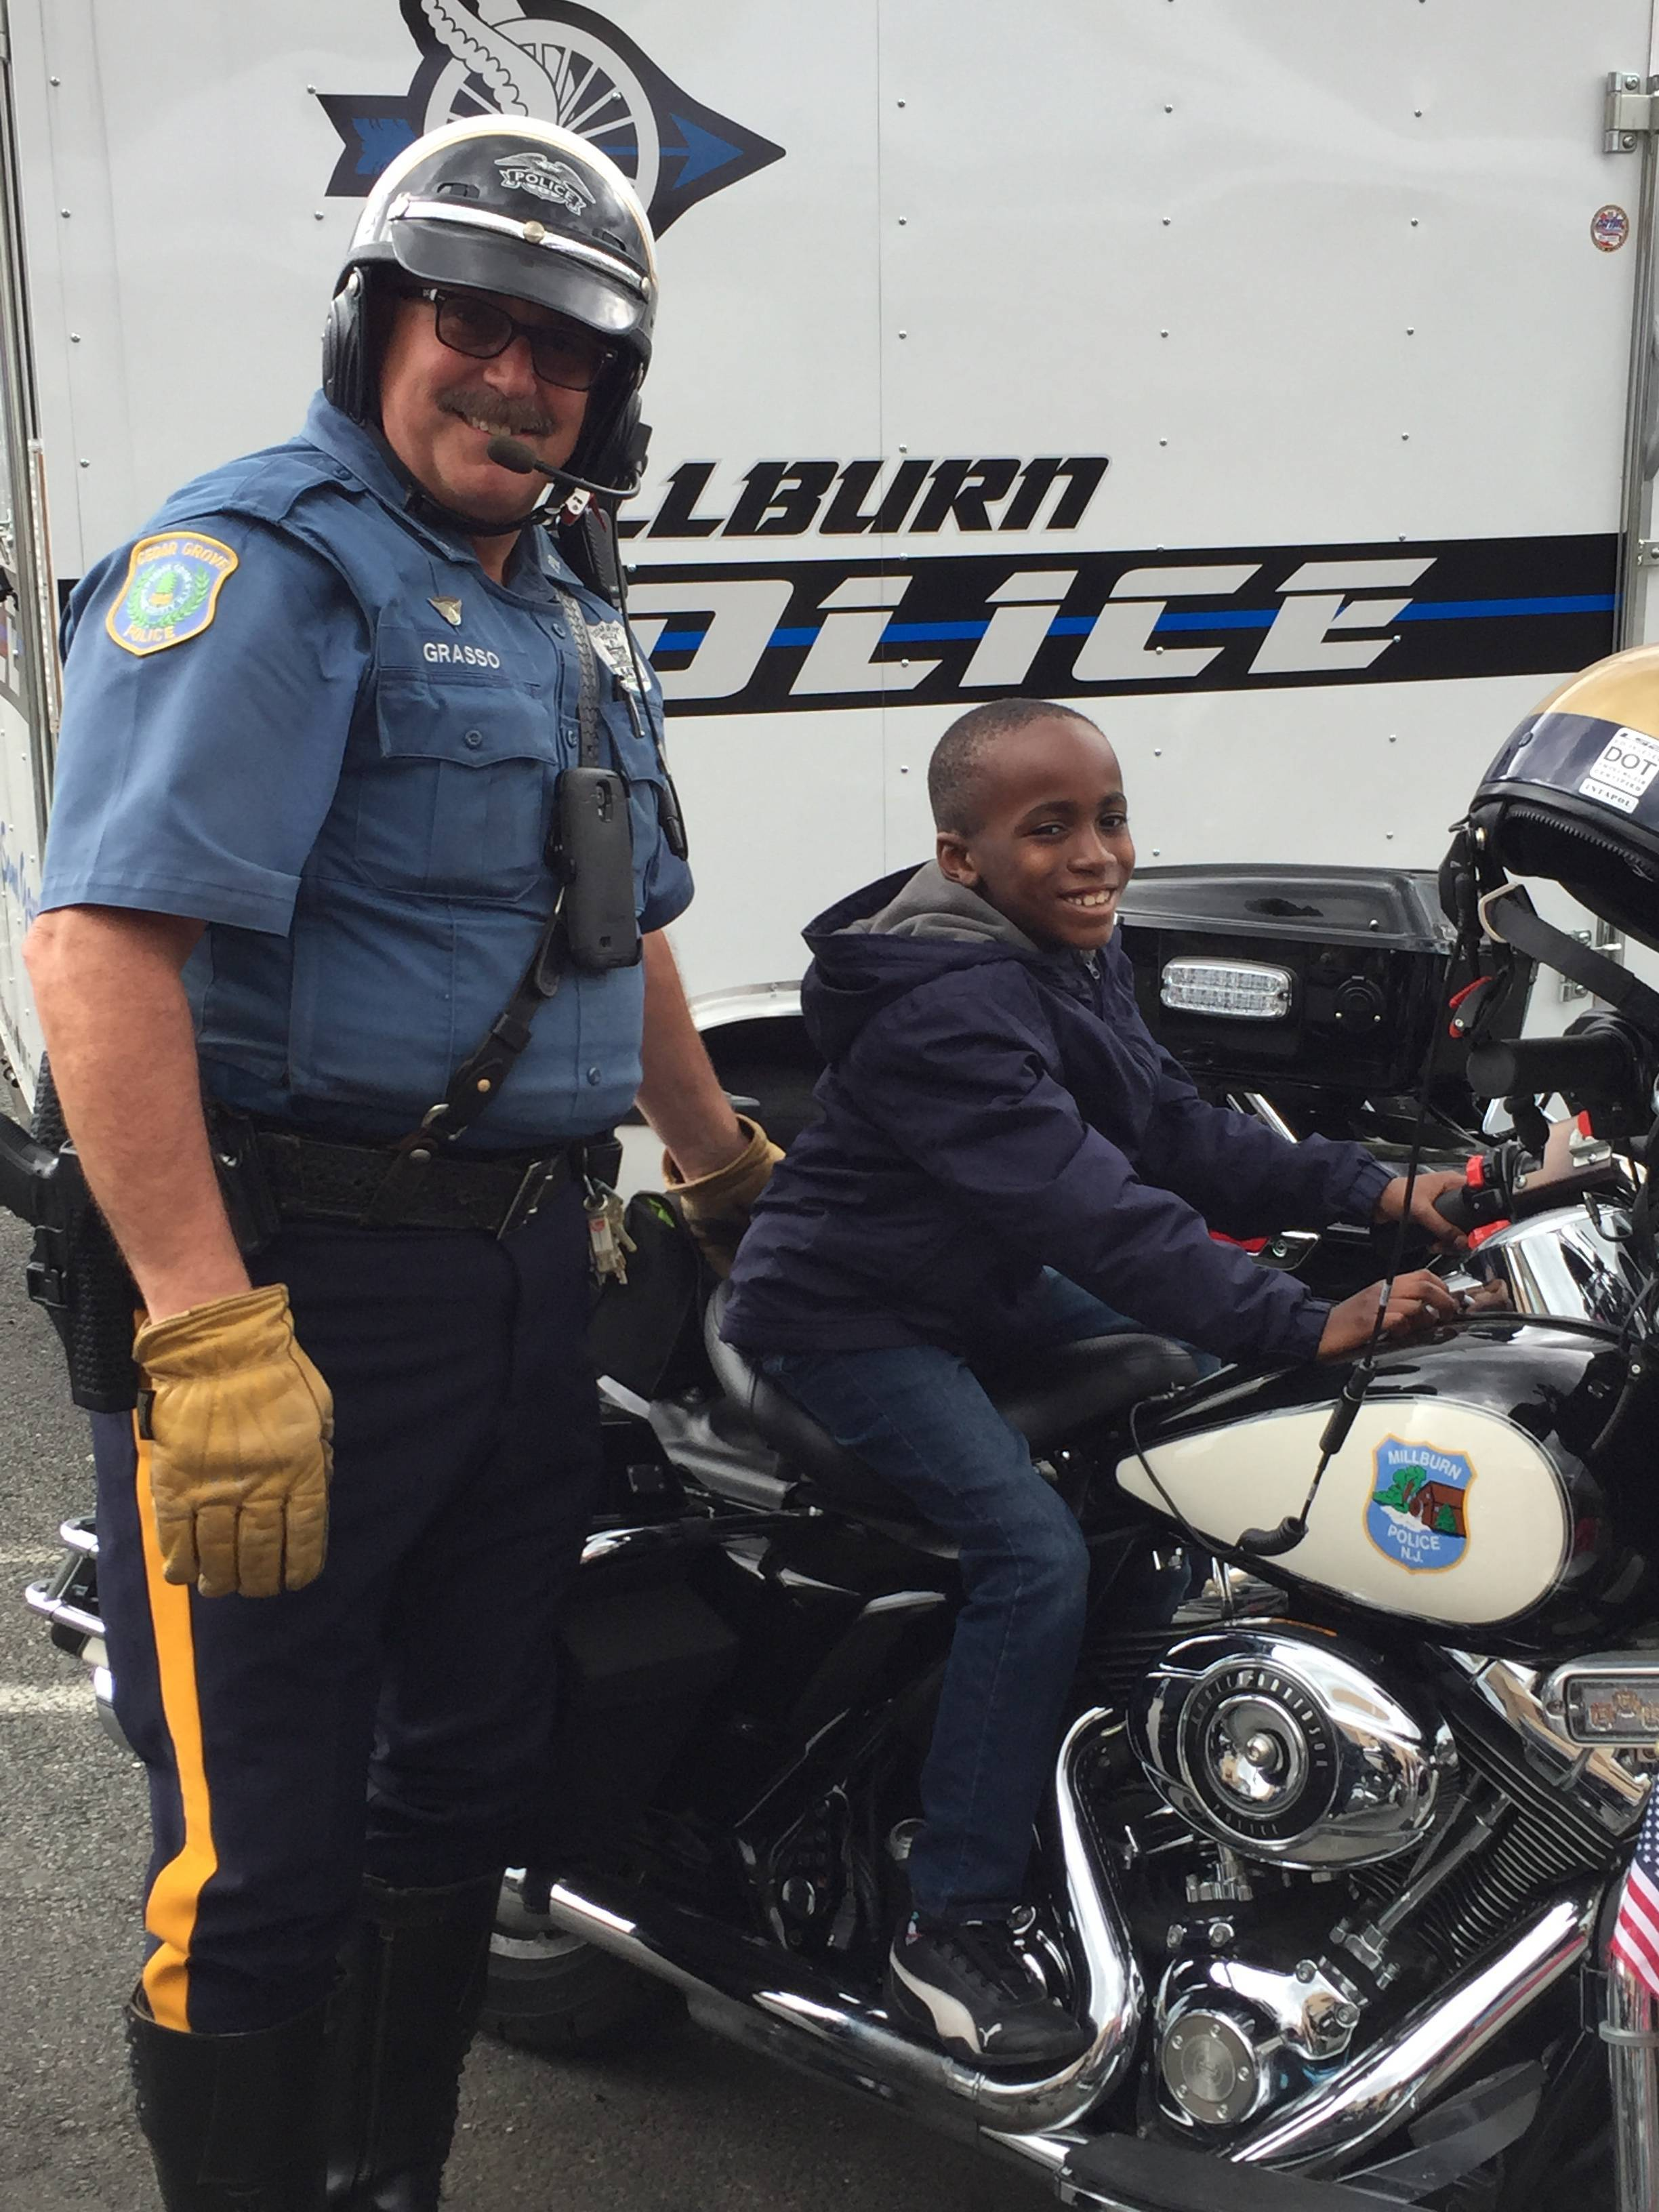 cedar grove police officers particpate in munity safety day